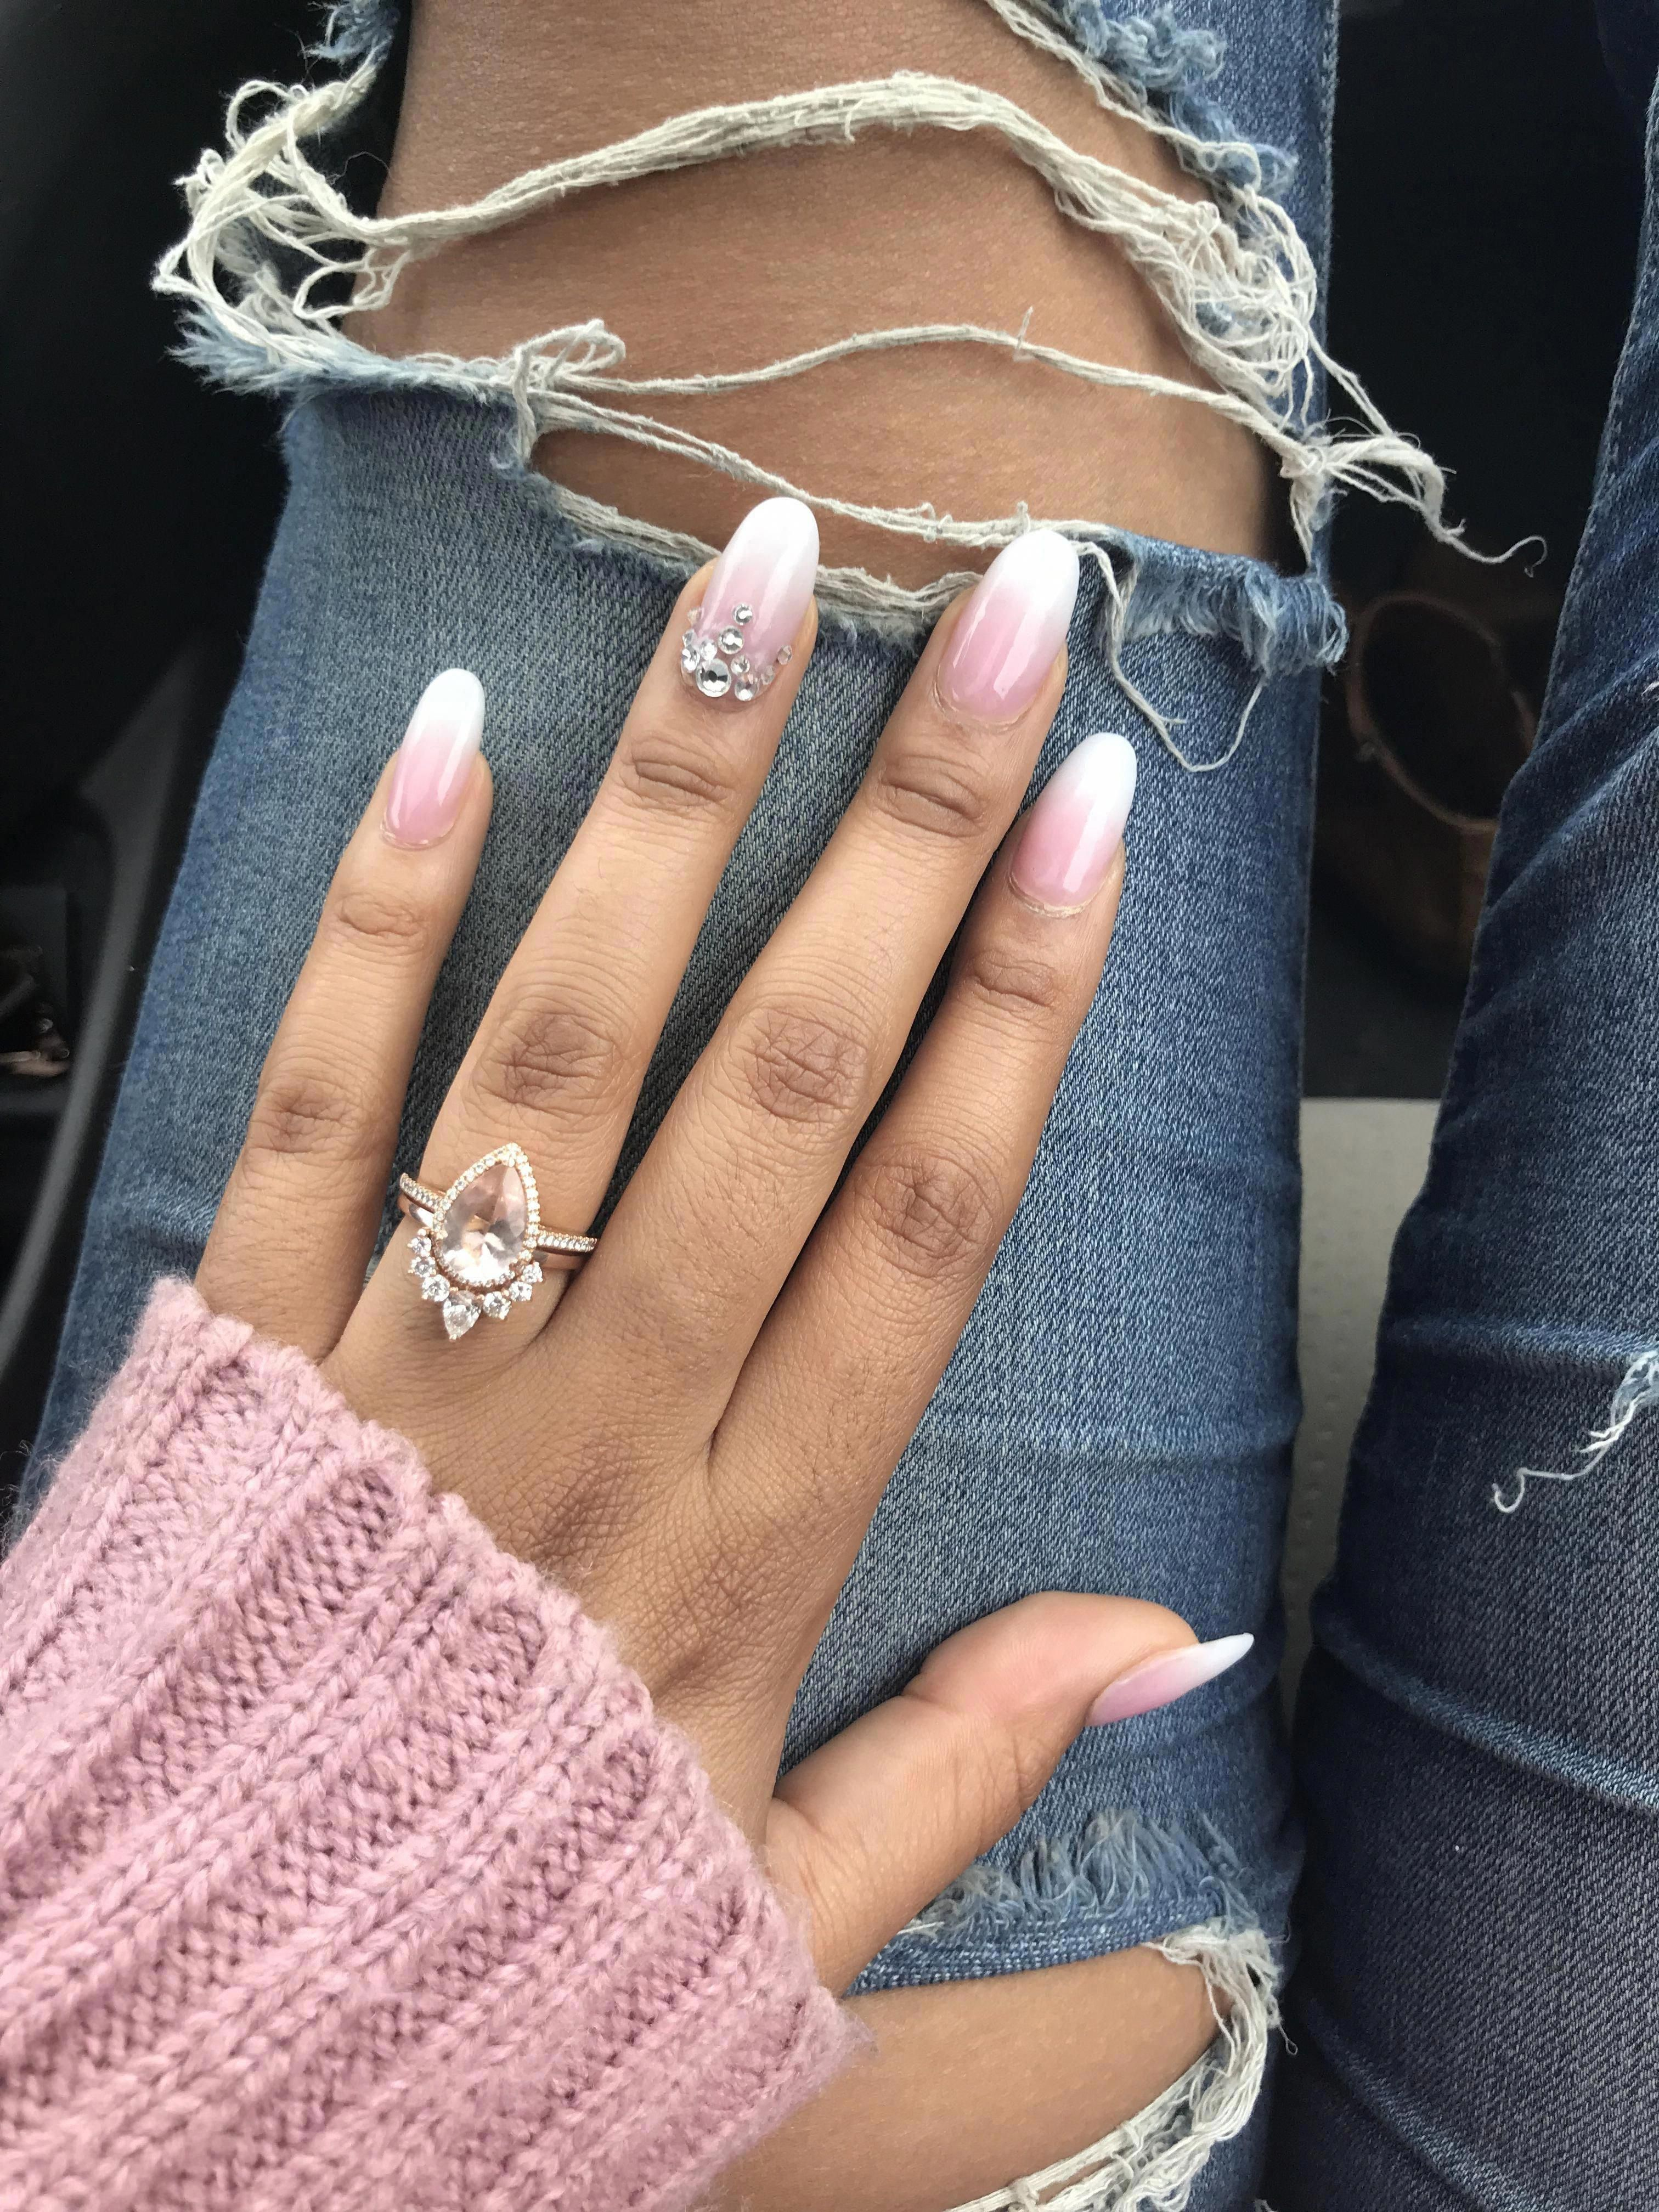 Attractive nails info number 9456156879 think about